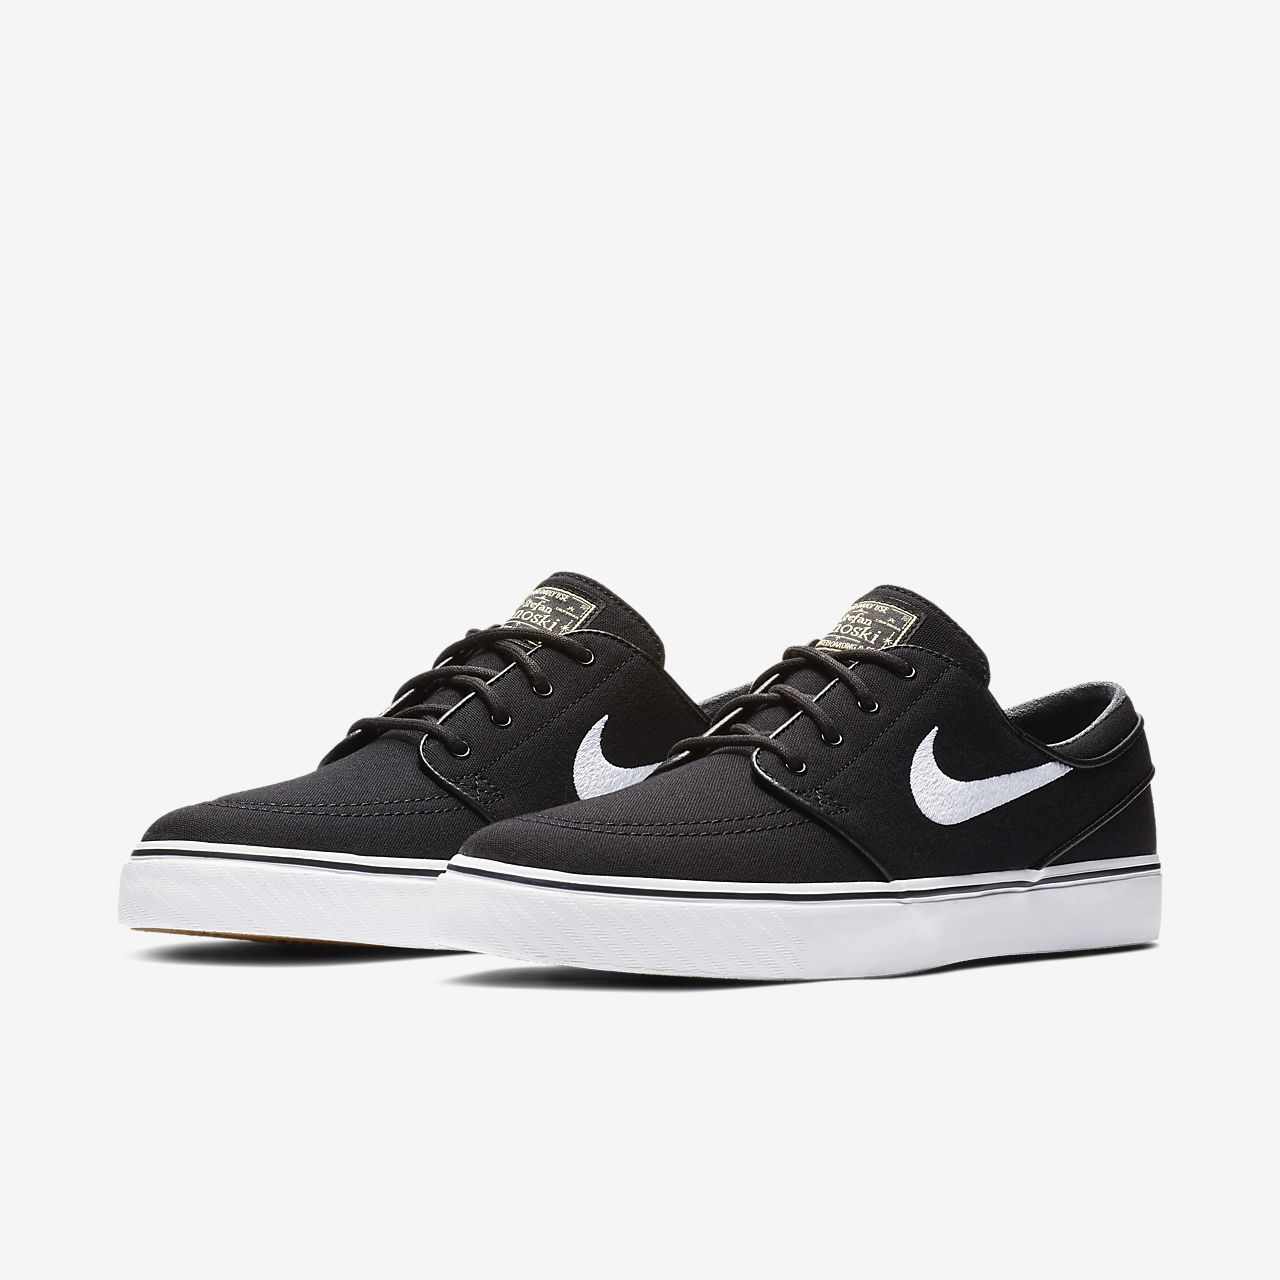 nike sb zoom stefan janoski canvas men 39 s skateboarding shoe sg. Black Bedroom Furniture Sets. Home Design Ideas